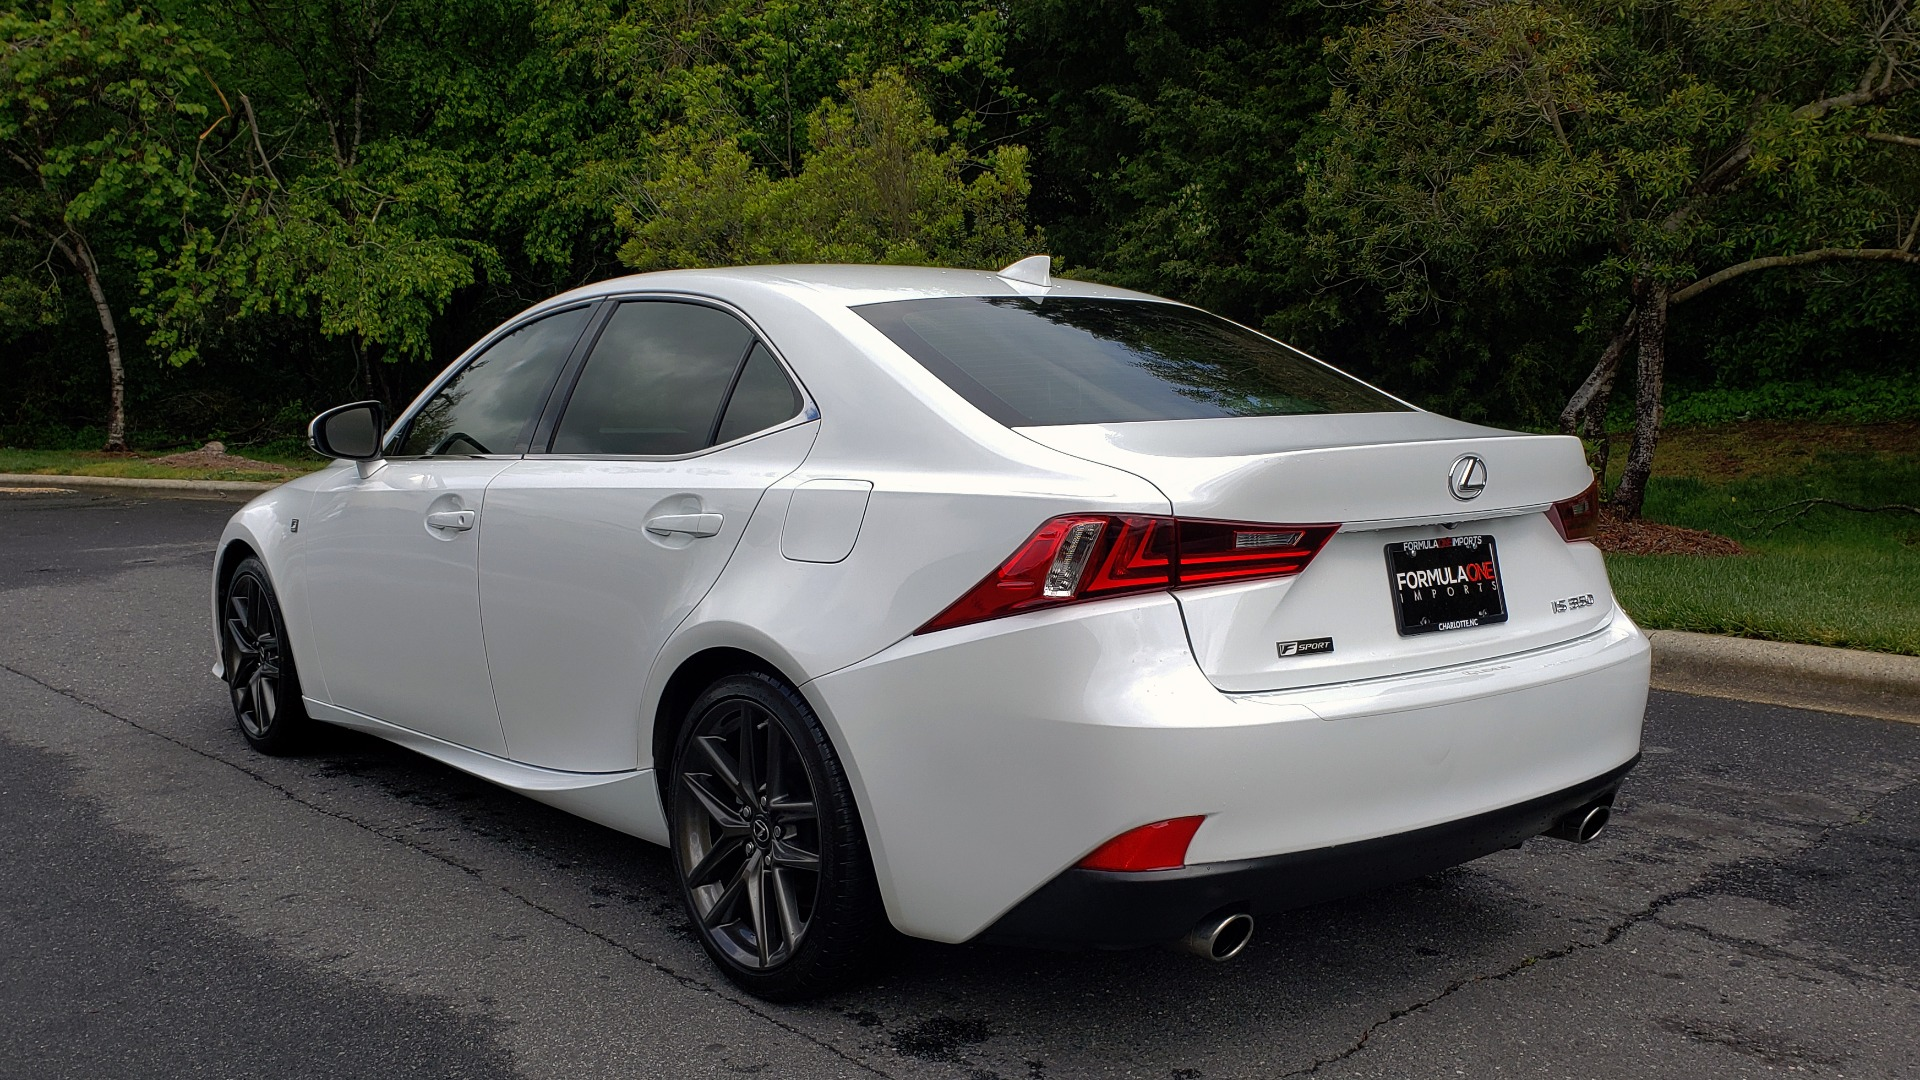 Used 2014 Lexus IS 350 F-SPORT / NAV / SUNROOF / REARVIEW / BSM / MARK LEV SND for sale Sold at Formula Imports in Charlotte NC 28227 3